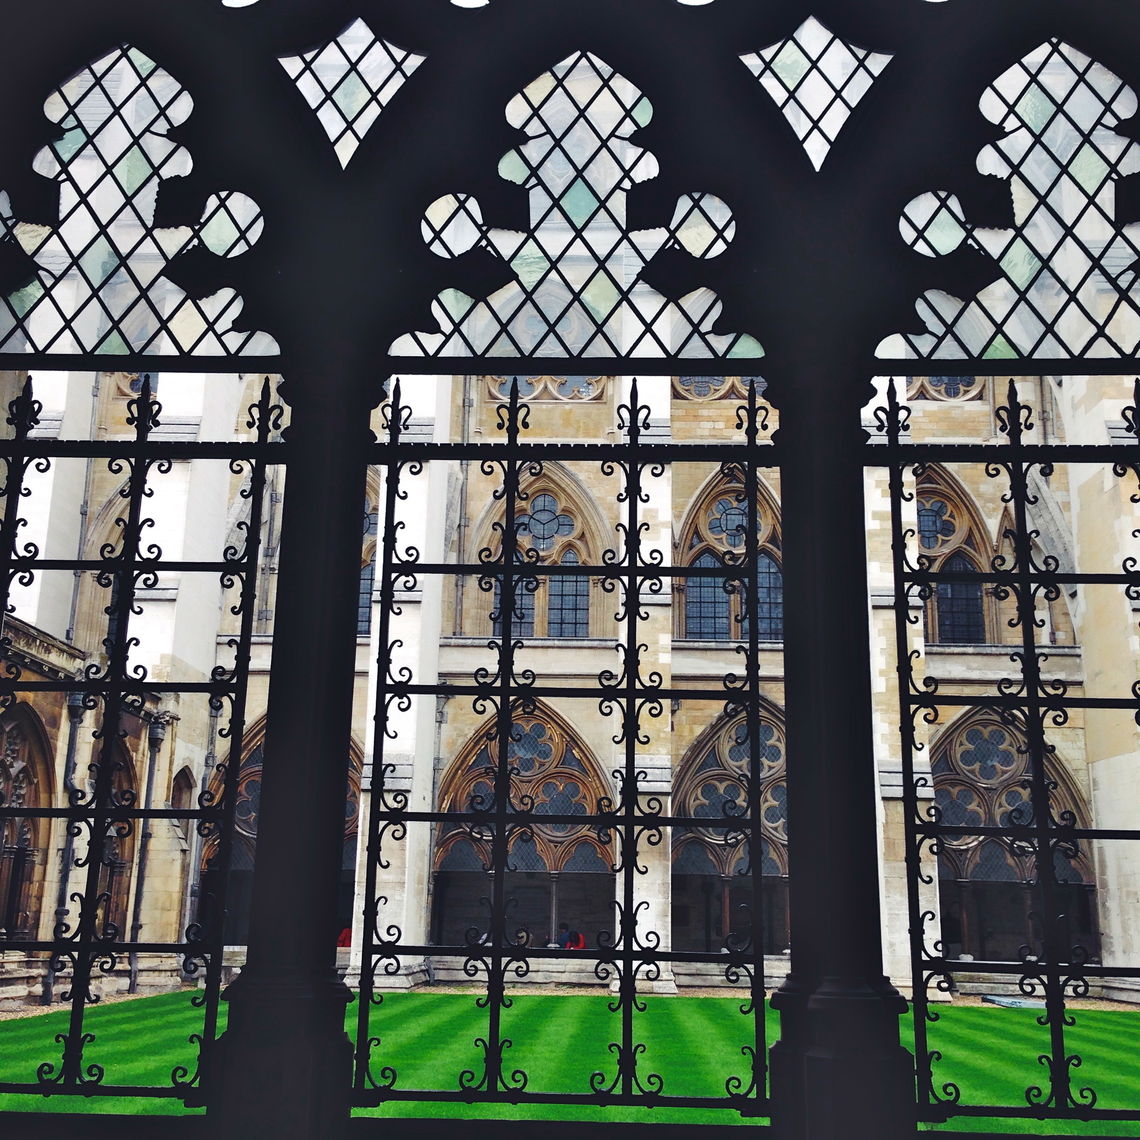 Wrought-iron latticework frames Gülce Tuncer's view of the inner courtyard in Westminster Abbey, England's most famous church. The London church, with a history stretching back over a thousand years, is the site of the coronations of British royalty.